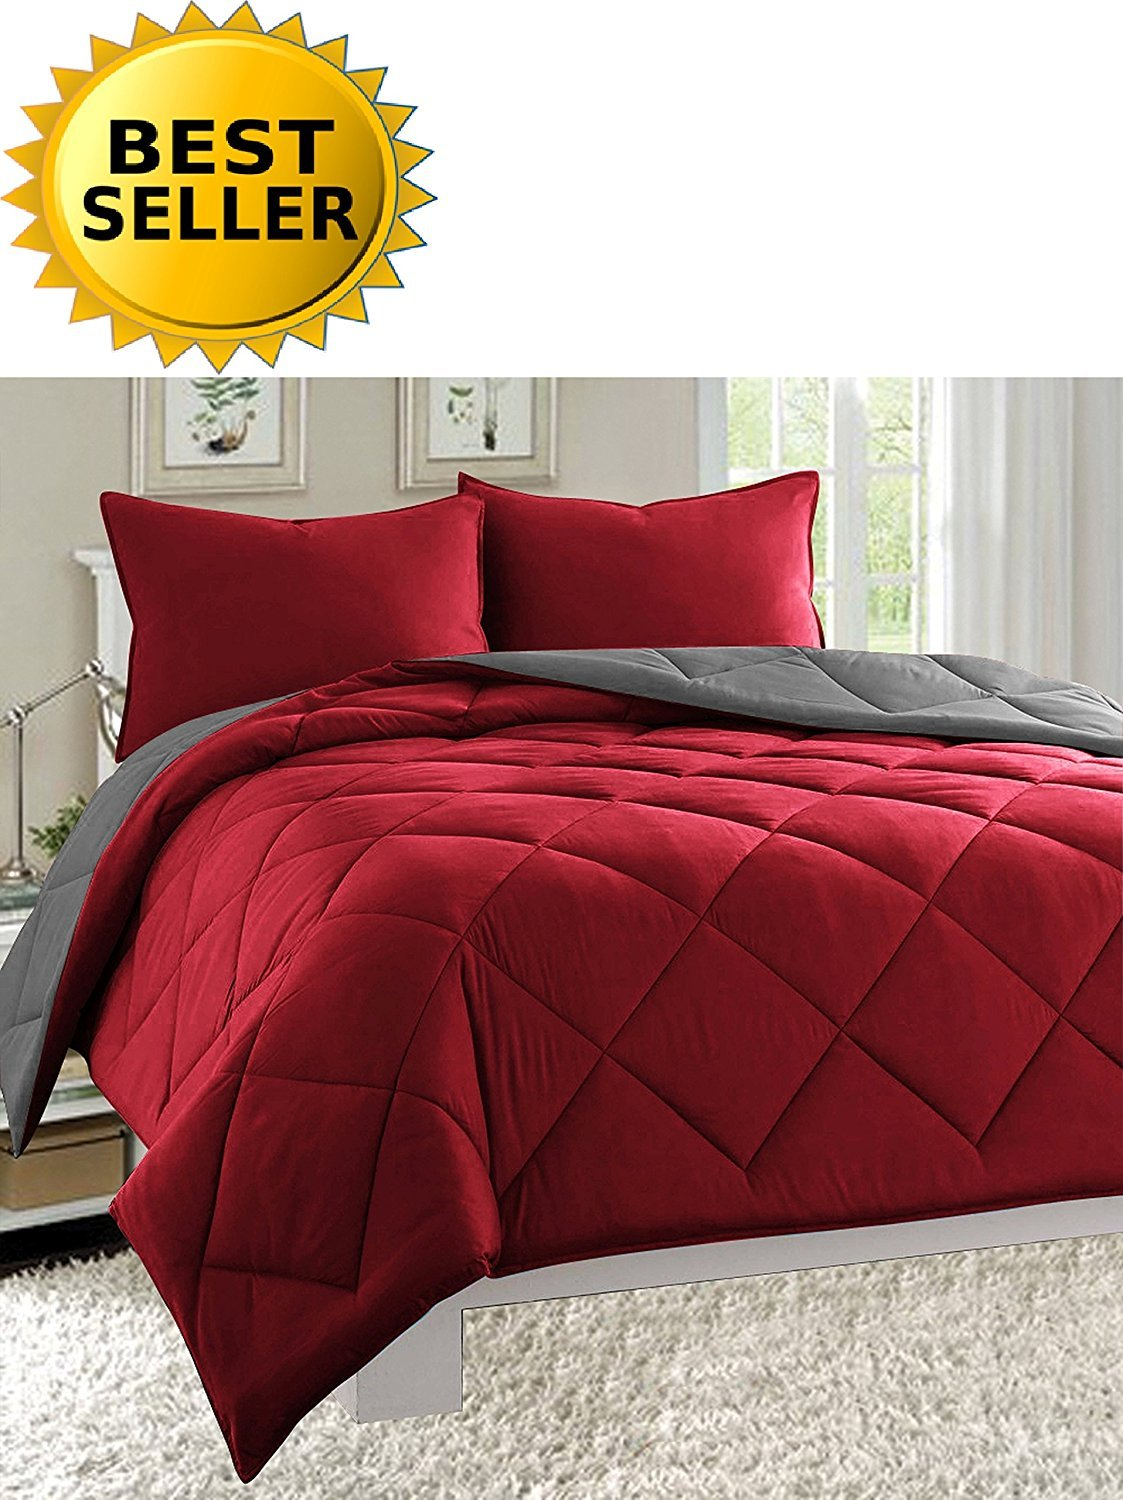 Celine Linen Luxury All Season Light Weight Down Alternative Reversible 3-Piece Comforter Set Burgundy/Grey